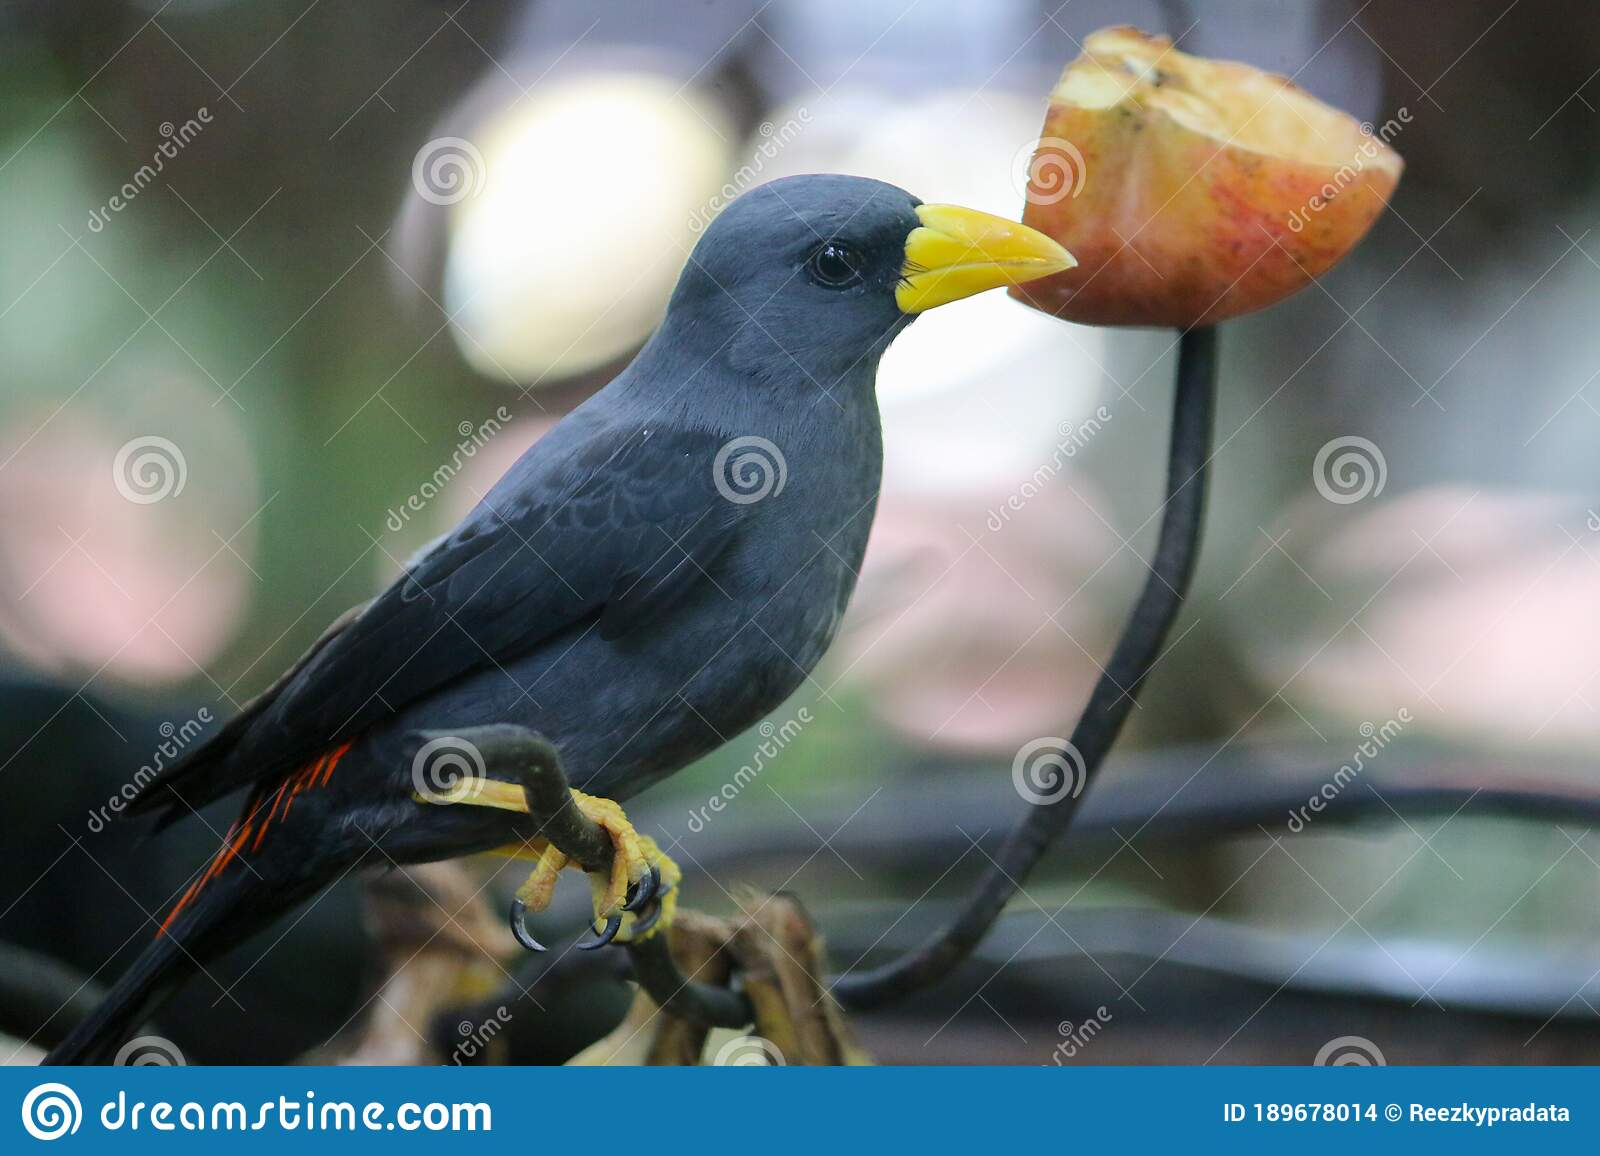 The Javan Myna Acridotheres Javanicus Also Known As The White Vented Myna Or Jalak Kebo In A Branch With Eating Apple Stock Photo Image Of Apple Enjoy 189678014